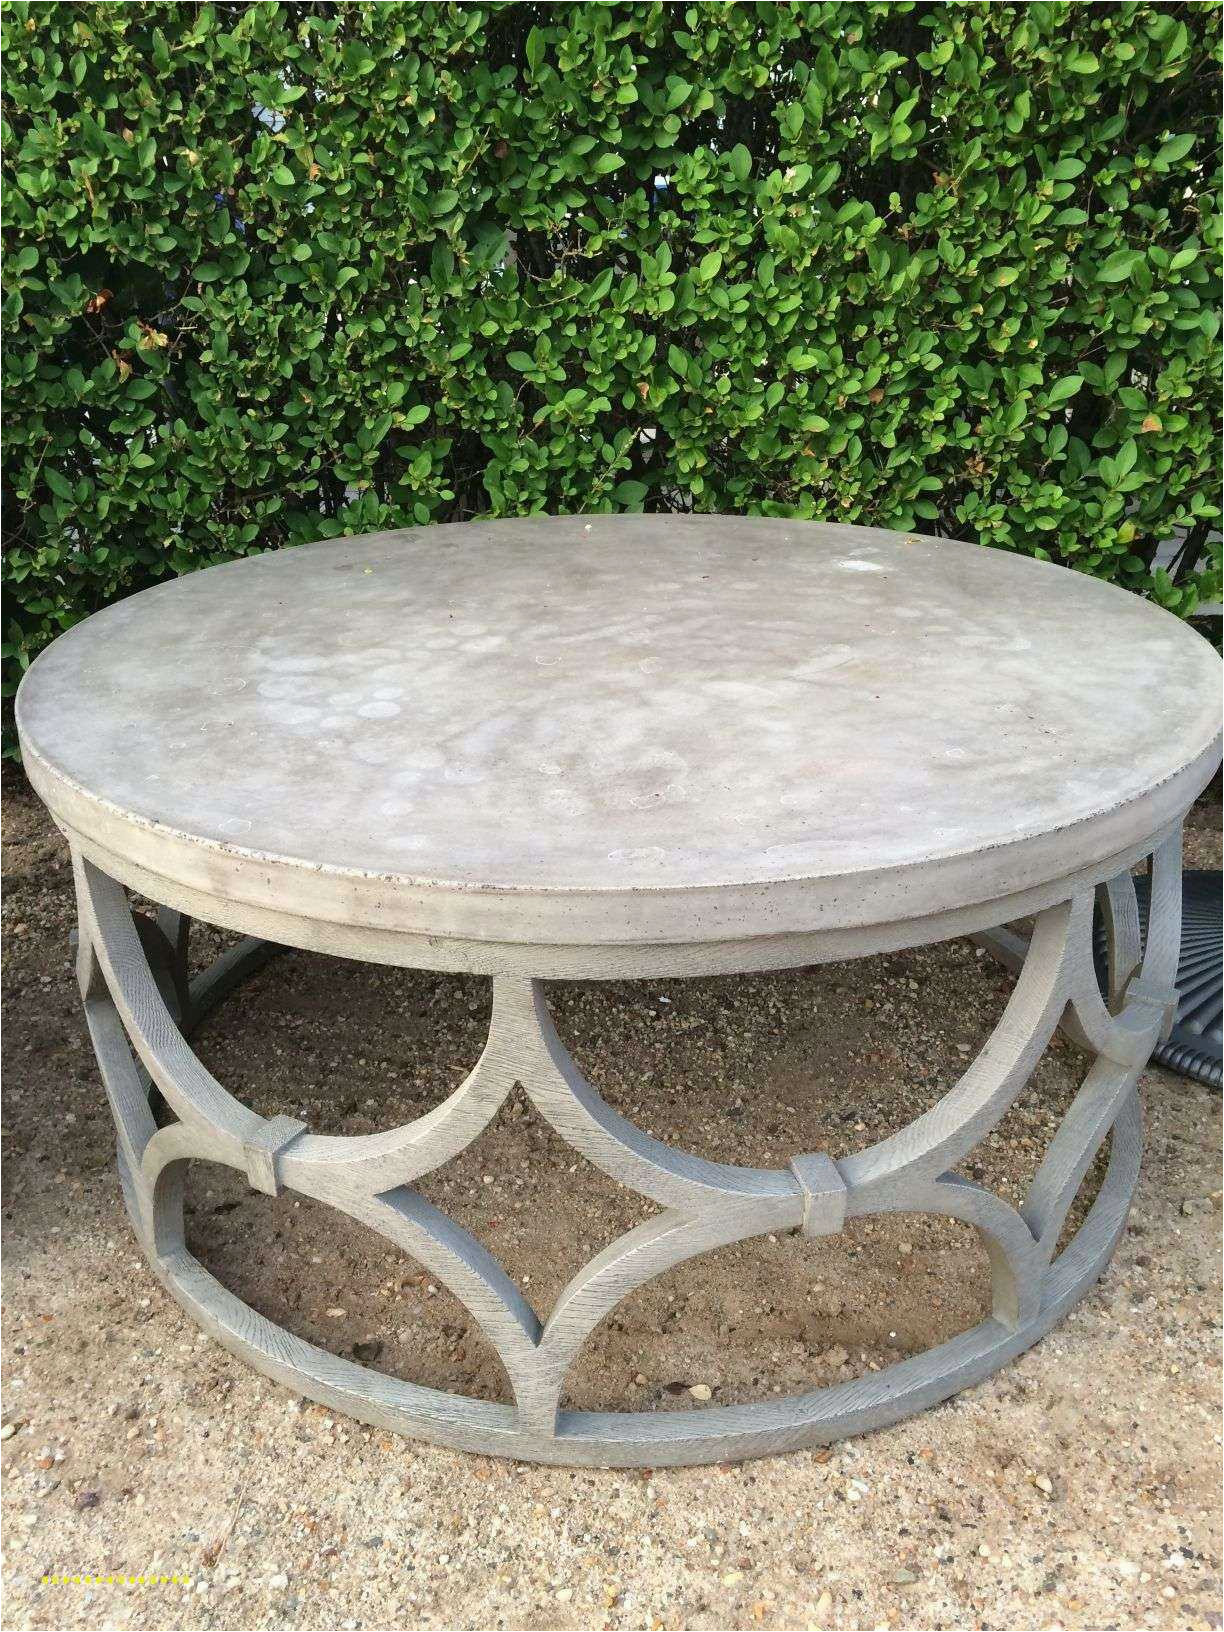 diy outdoor coffee table round luxury end rowan small concrete mecox gardens ideas plastic tables white drum furniture accent ashley home dark wood dresser childrens twin